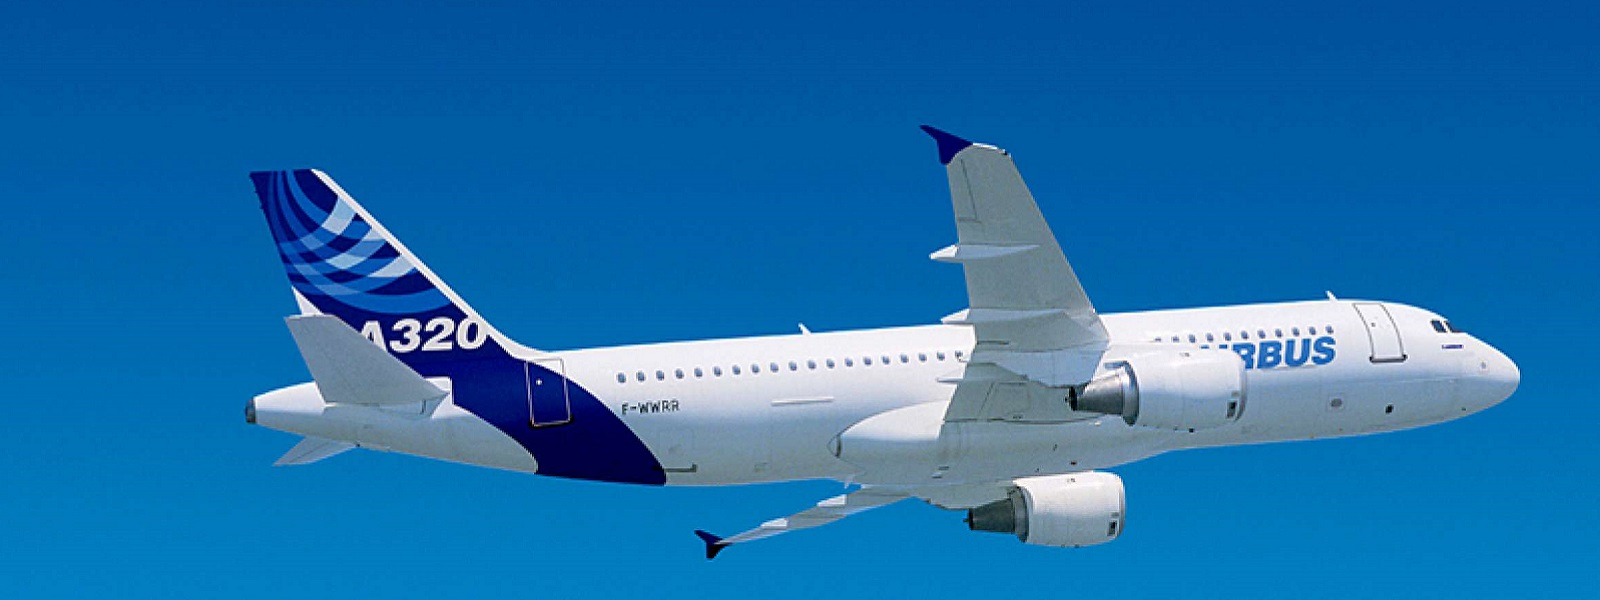 AIRBUS A-320 type rating course | AFA